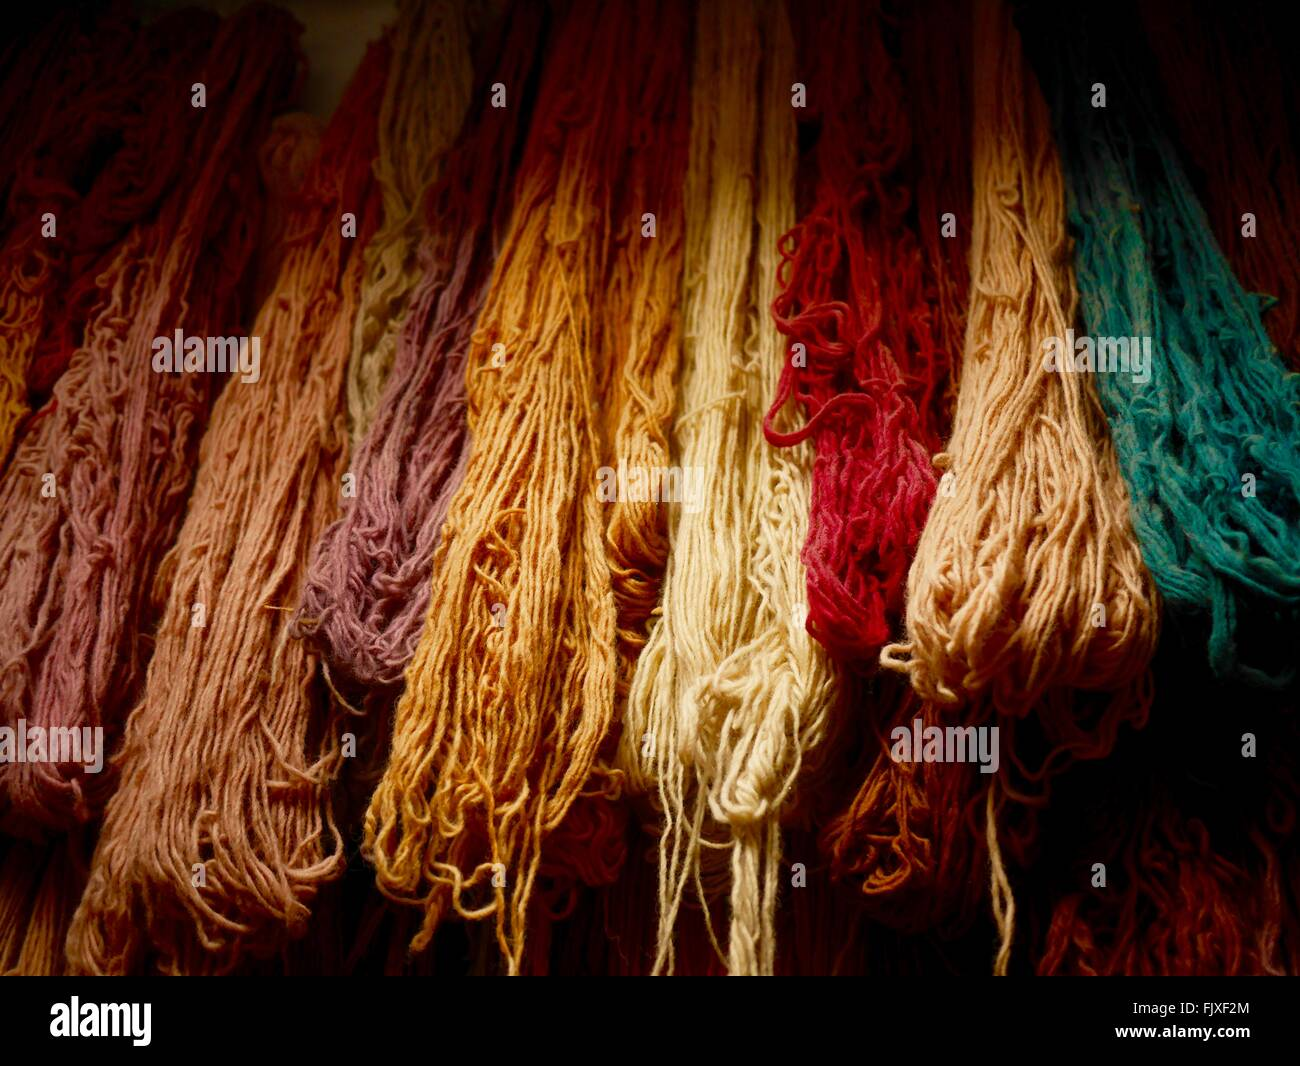 Close-Up Of Multi Colored Wool Hanging At Store Stock Photo